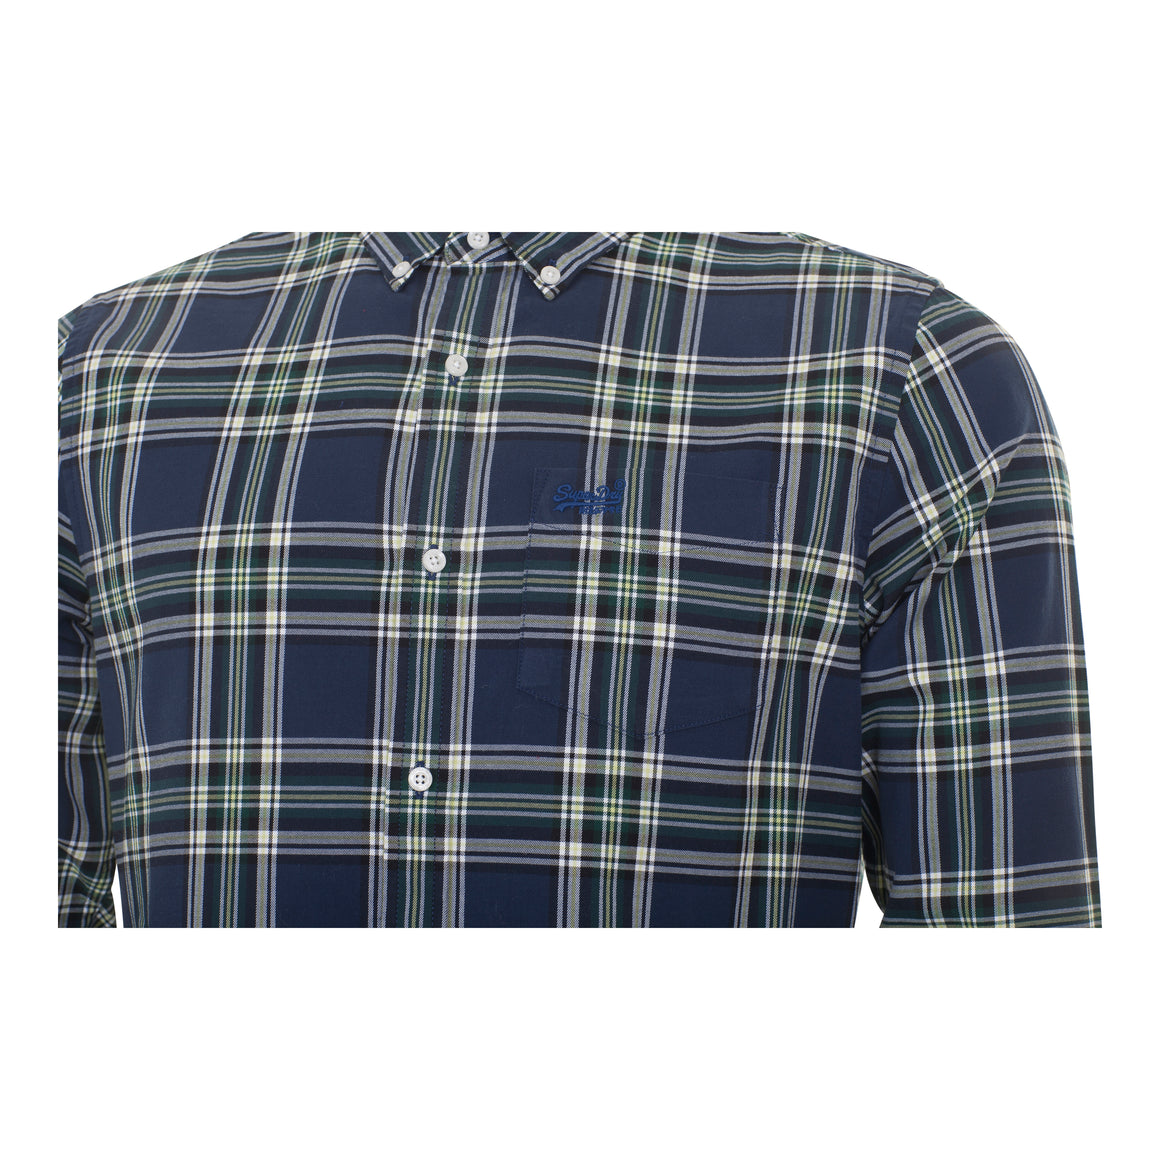 Classic London Long Sleeved Shirt for Men in Ivy Check